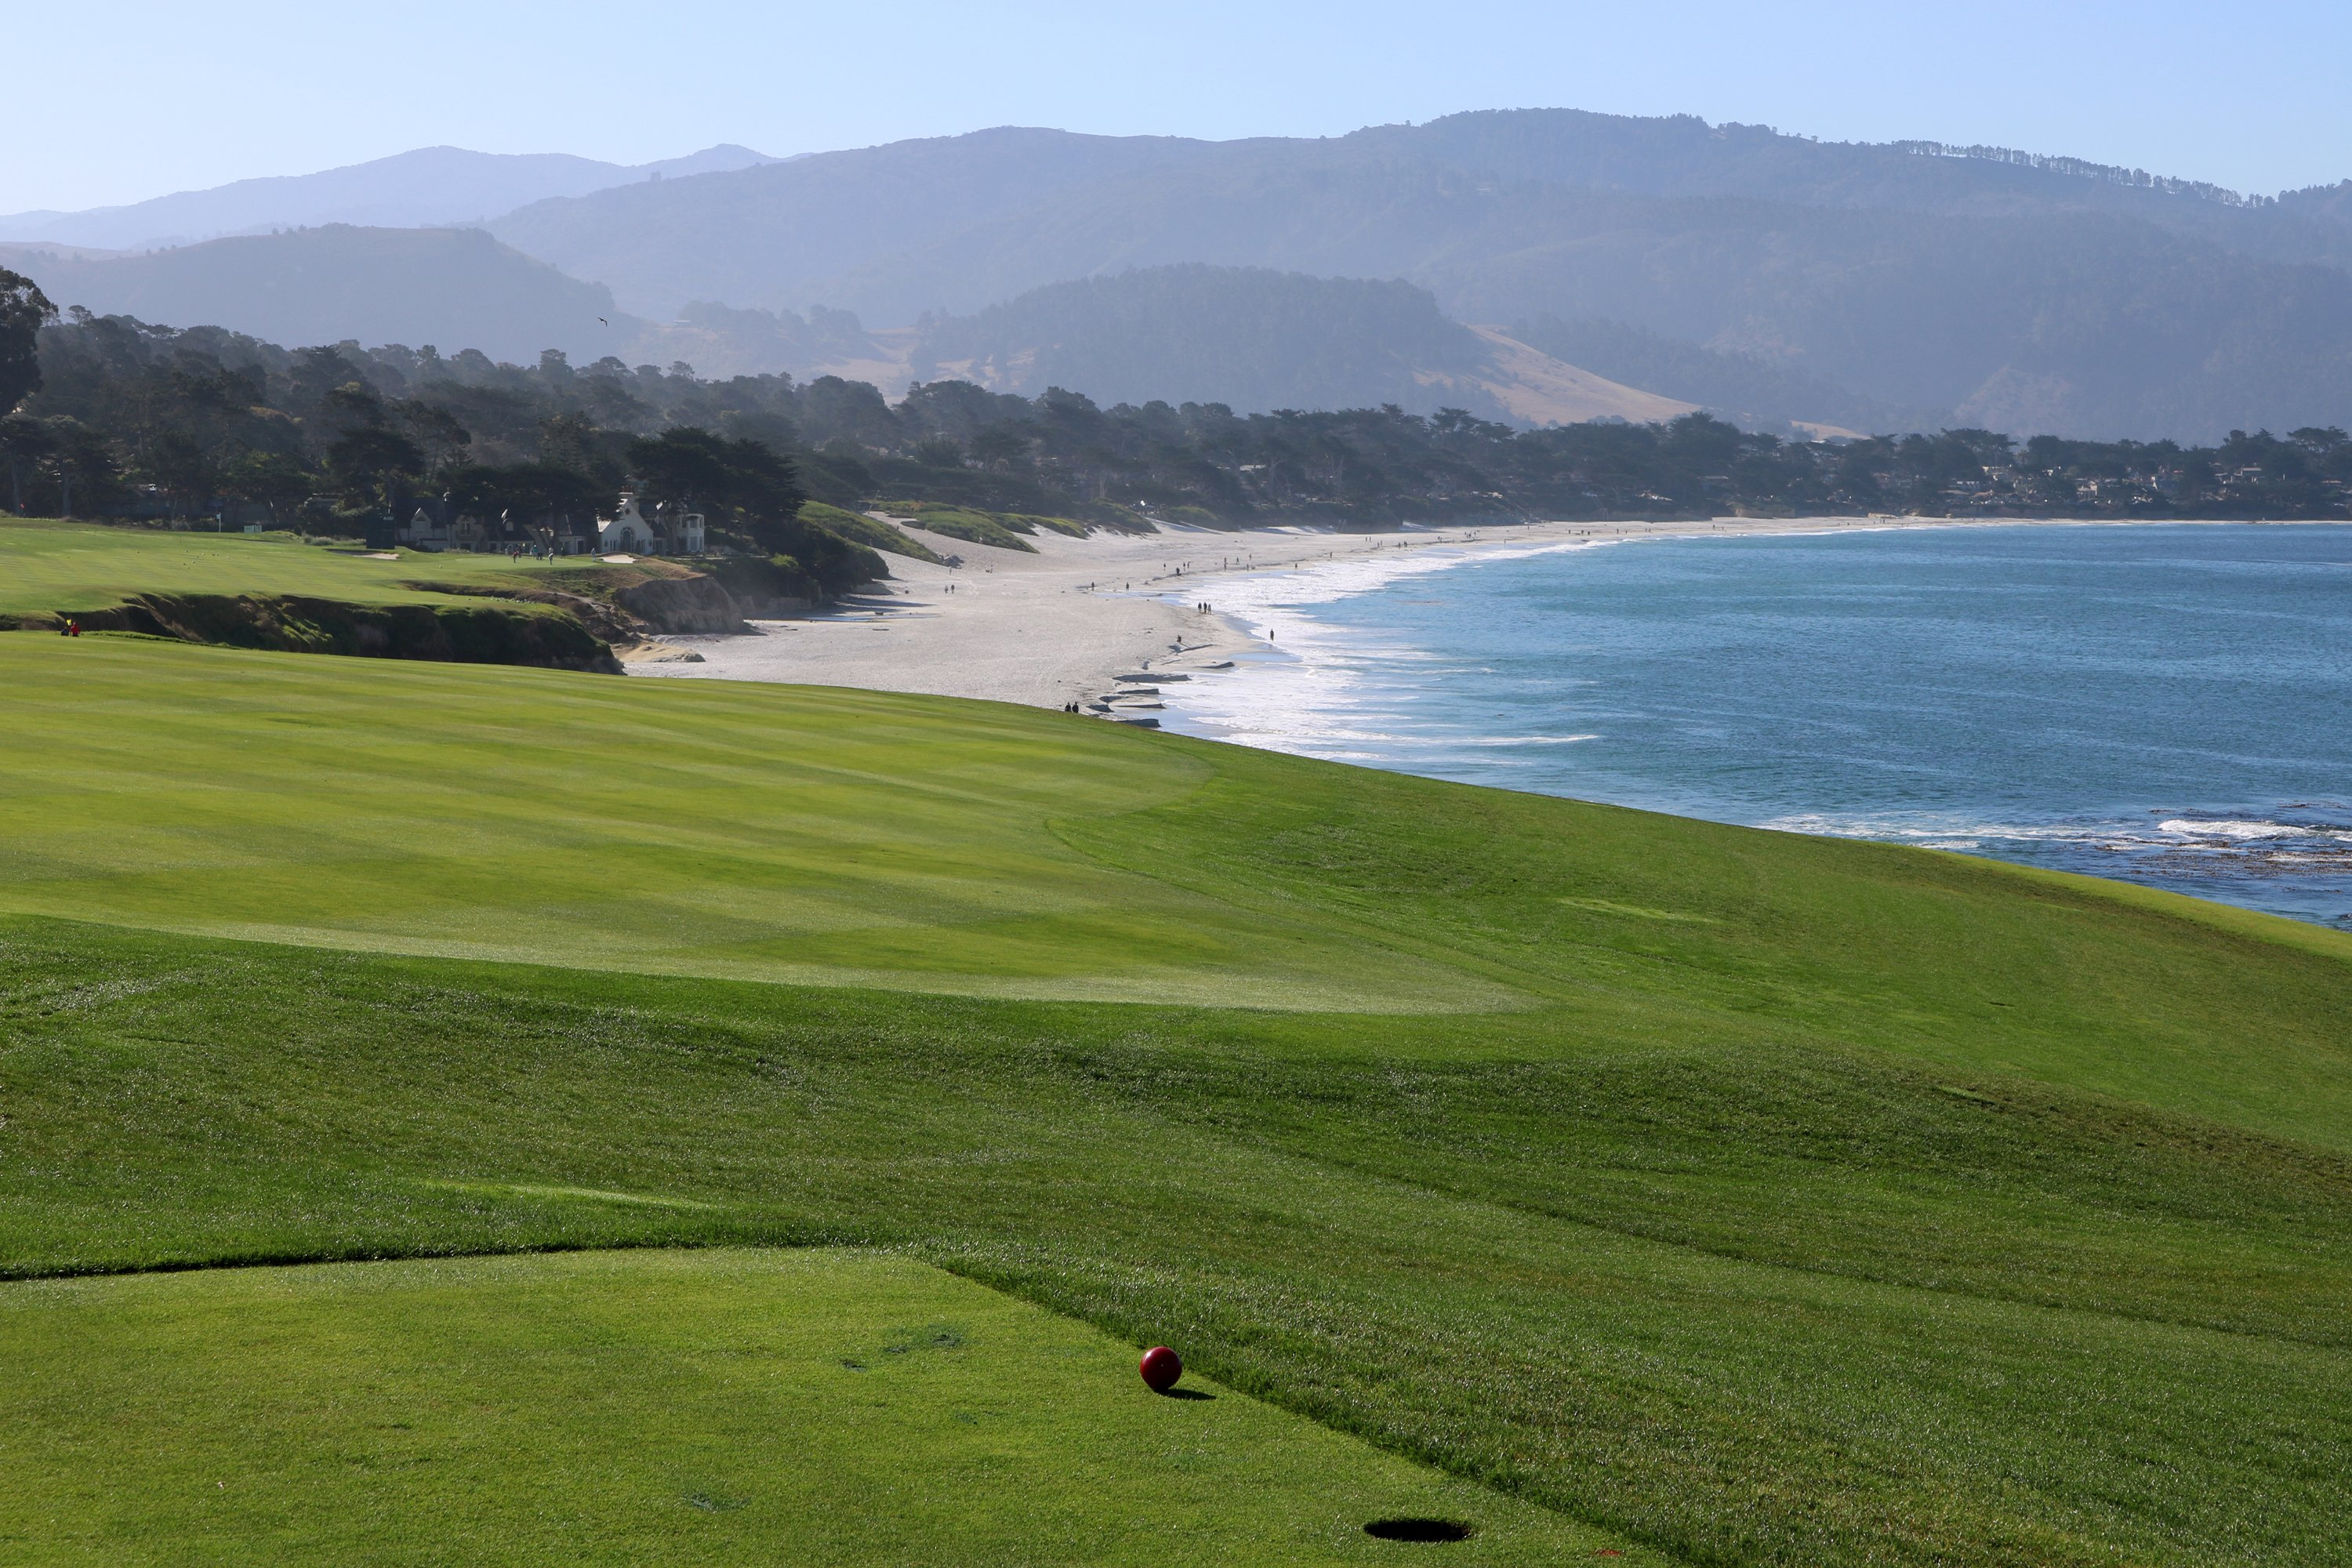 Blues skies, warm weather and a scenic view near the 9th hole of Pebble Beach Golf Links